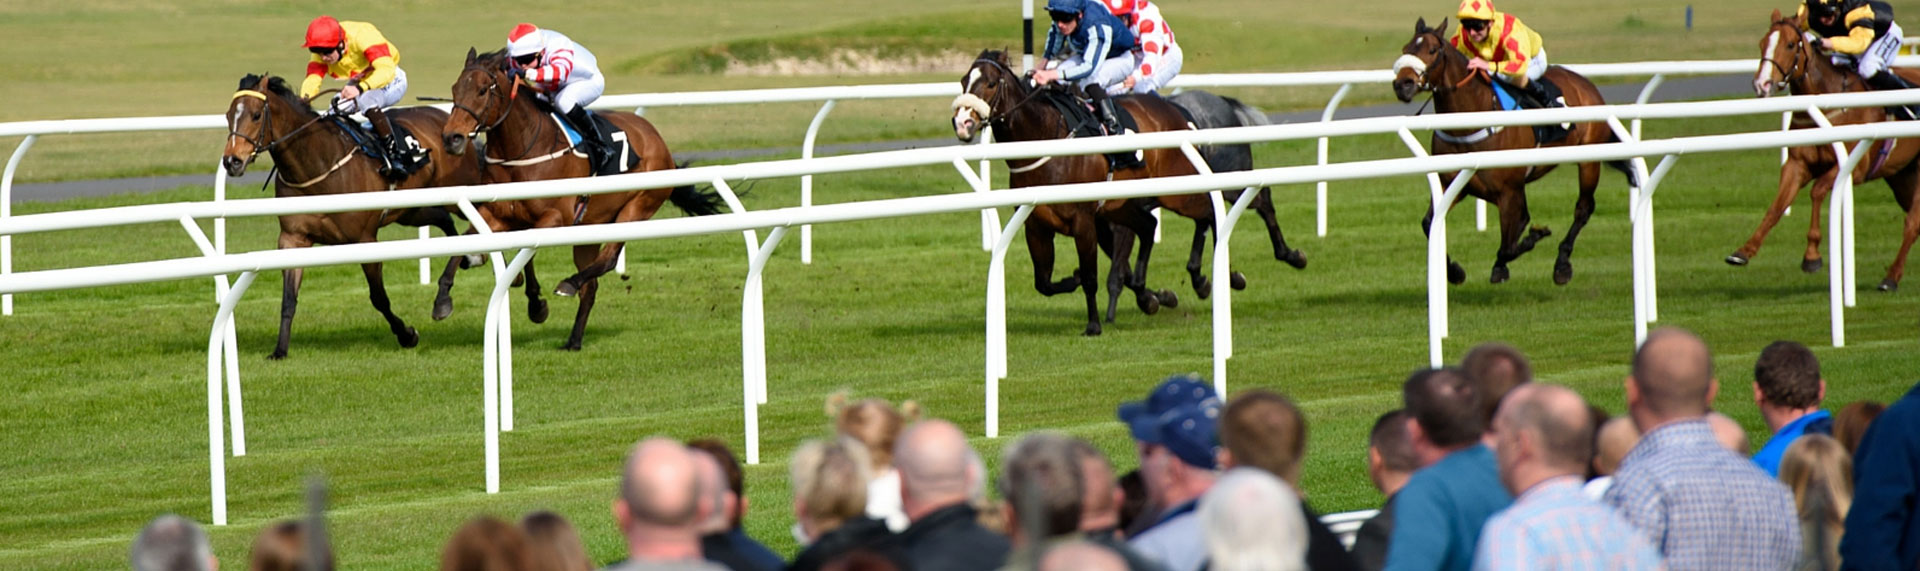 Scottish Flat season gets off to a flier with Easter Saturday fixture